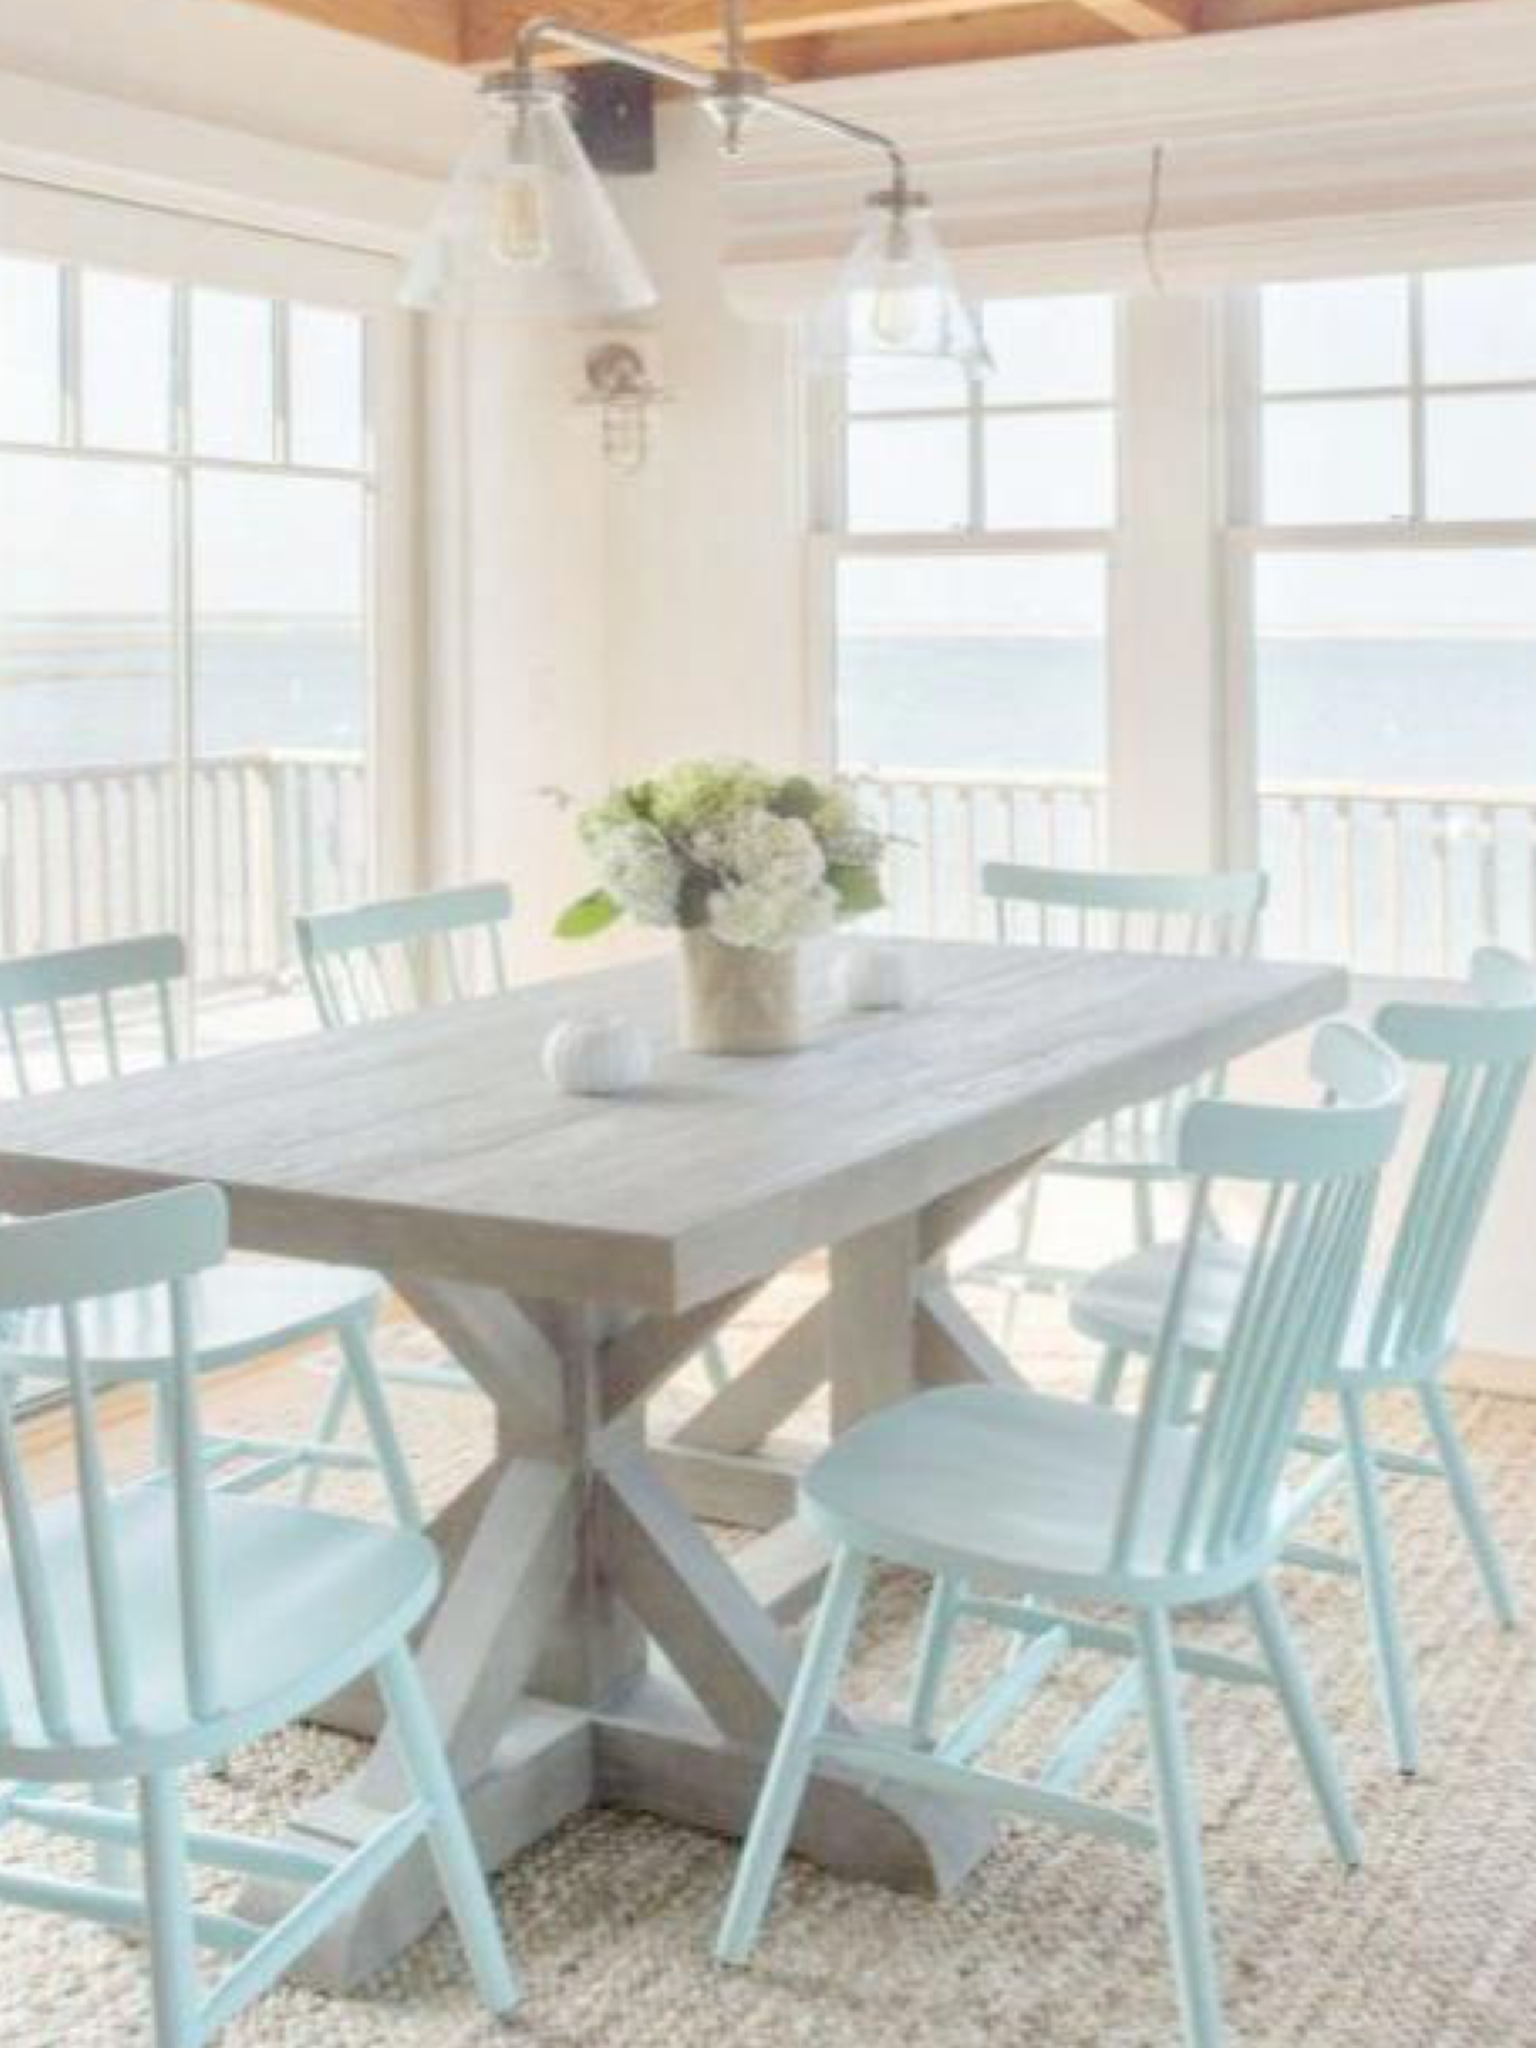 Pin by Jan on beach house Cottage dining rooms, Coastal